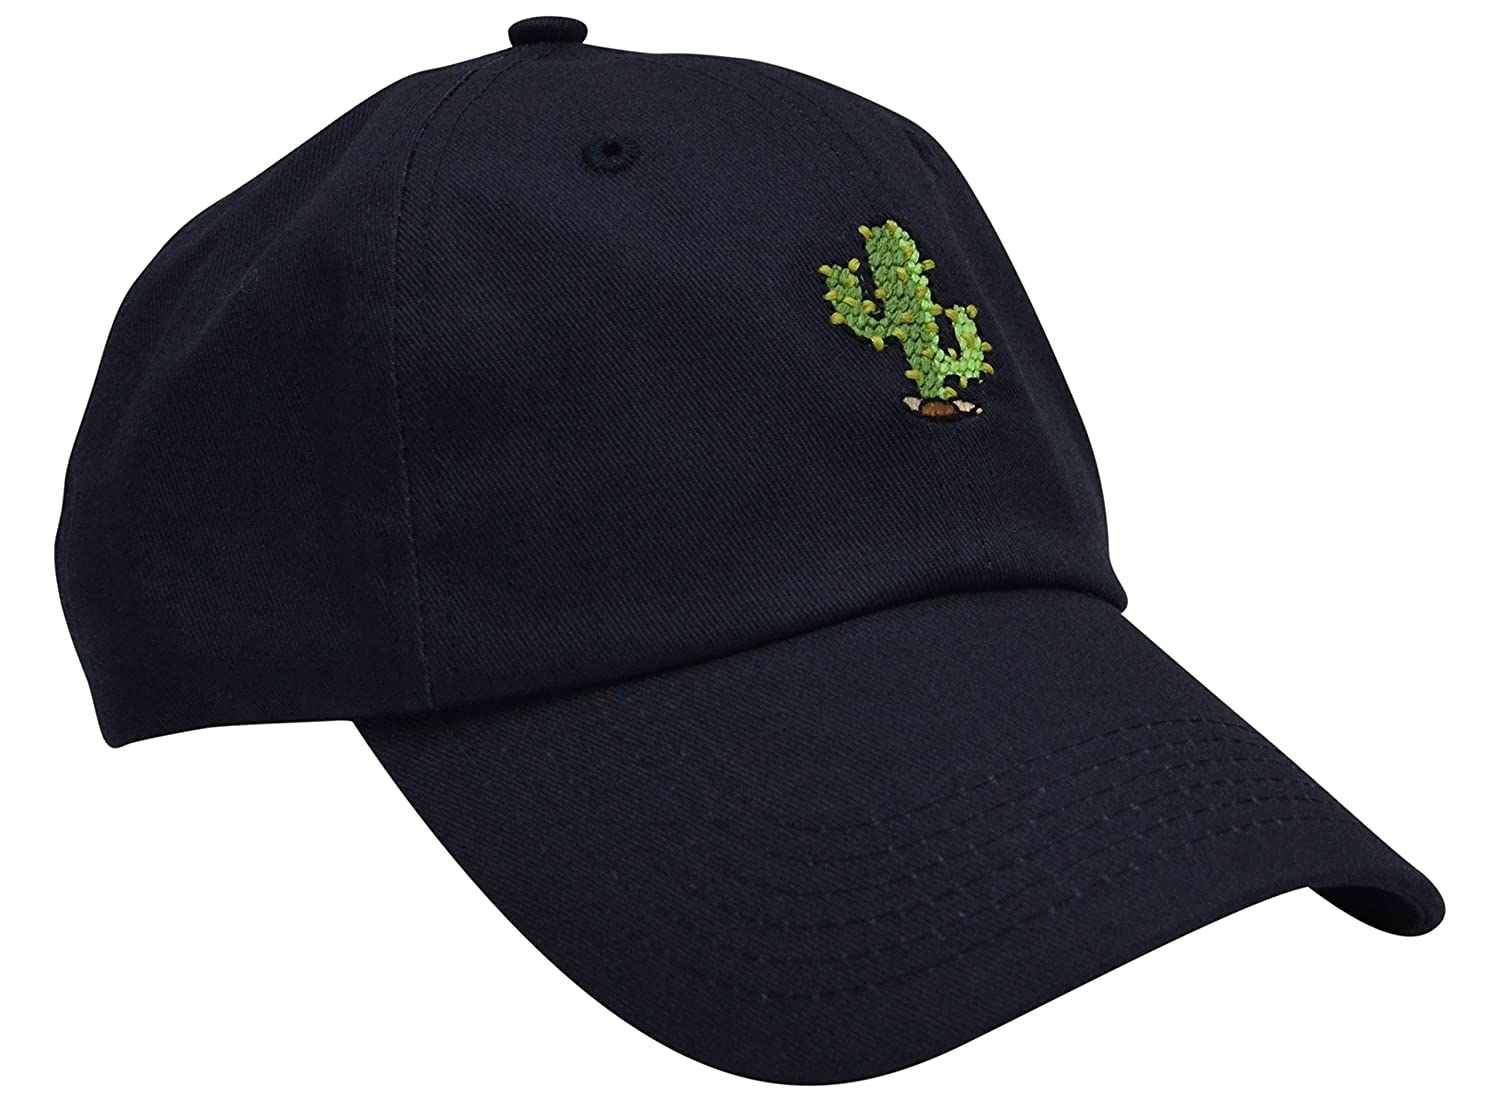 Skyed Apparel Cactus Embroidery Adjustable Baseball Cap Baseball Hat Dad Hat  (Dark Blue) at Amazon Men s Clothing store  311857ec25e